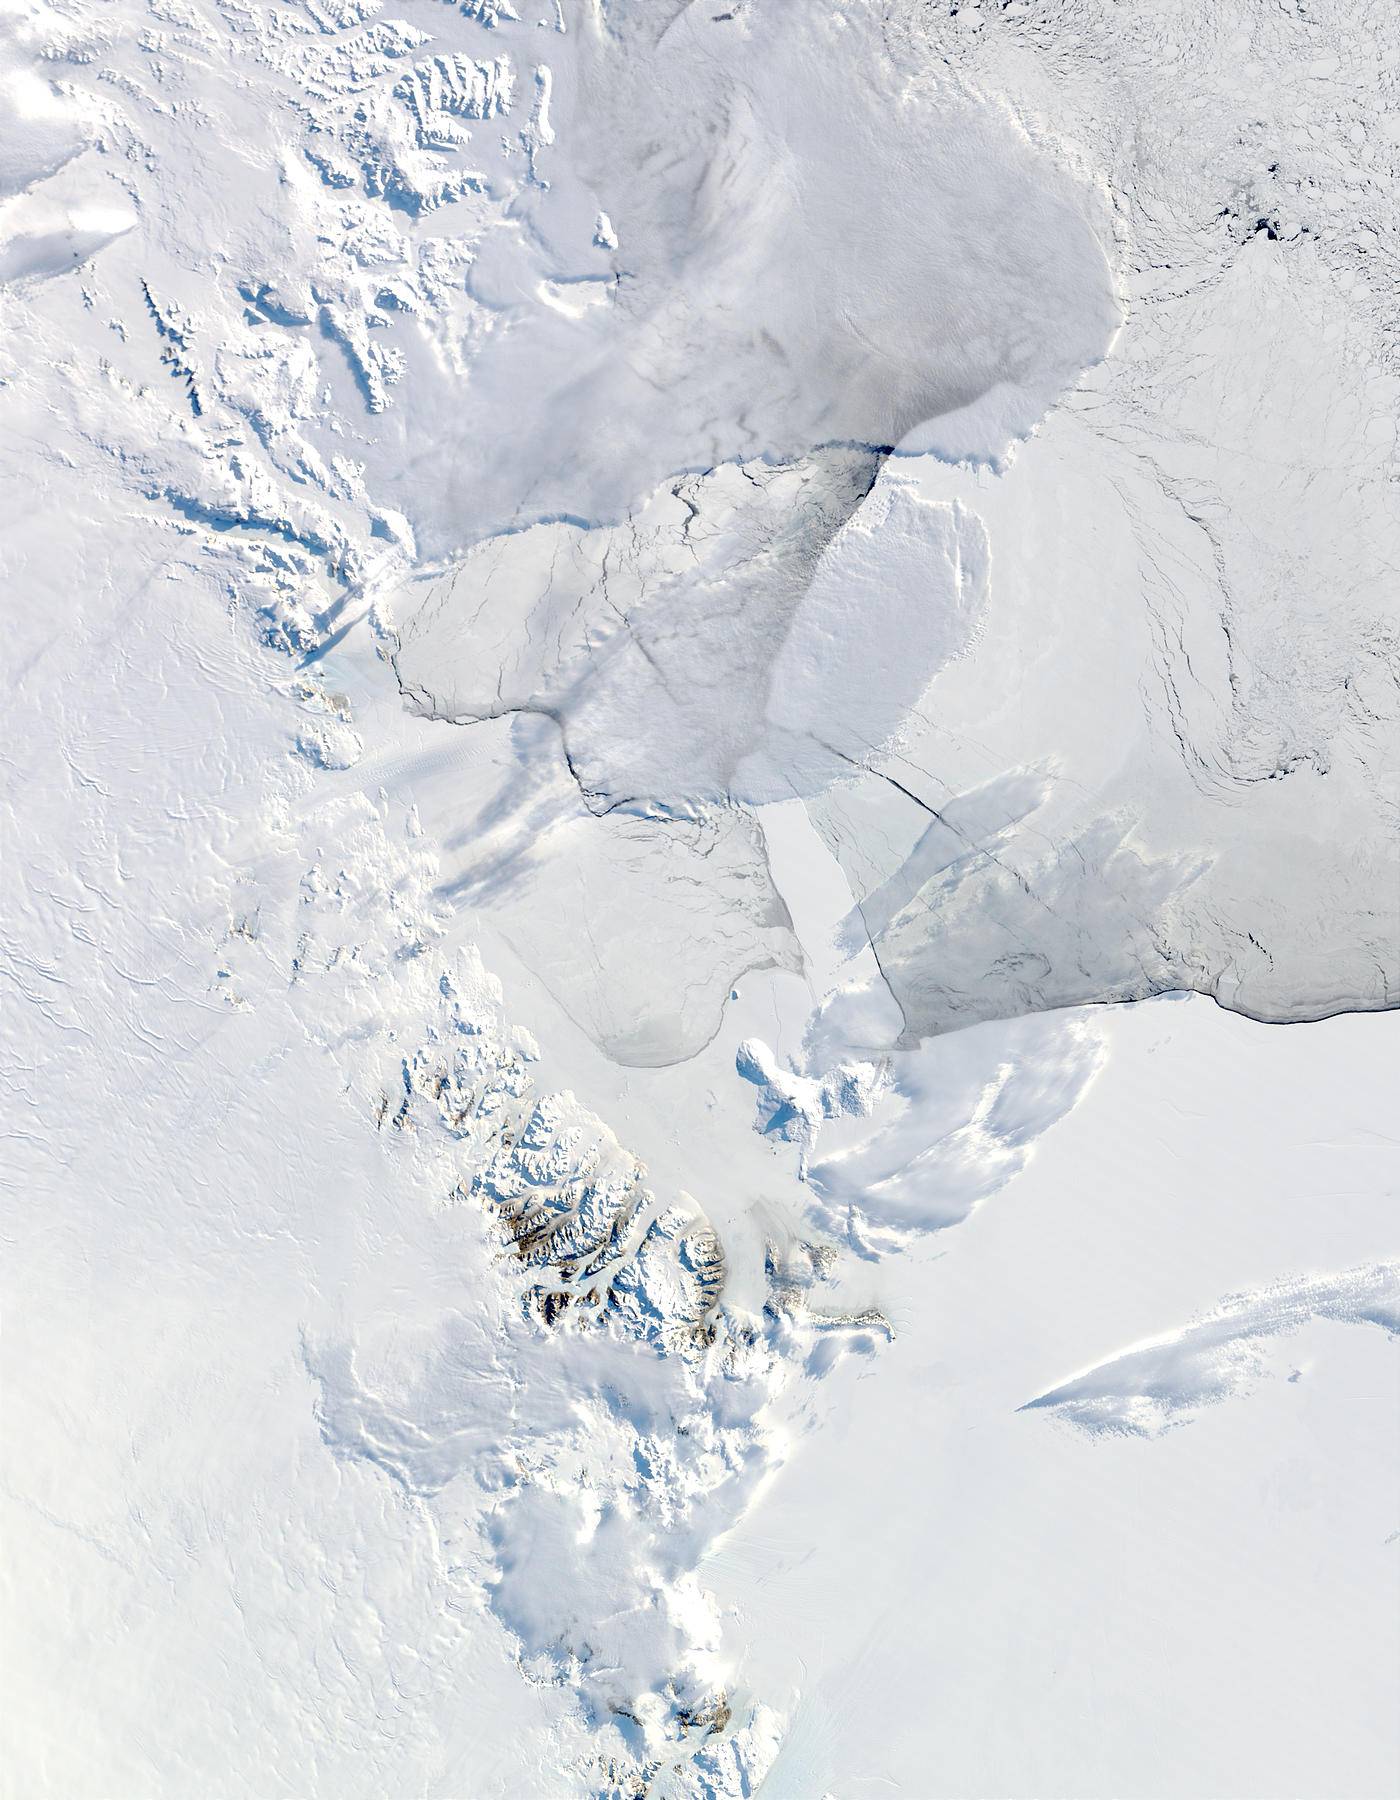 C-16, C-19 and B-15A icebergs in the Ross Sea, Antarctica - related image preview